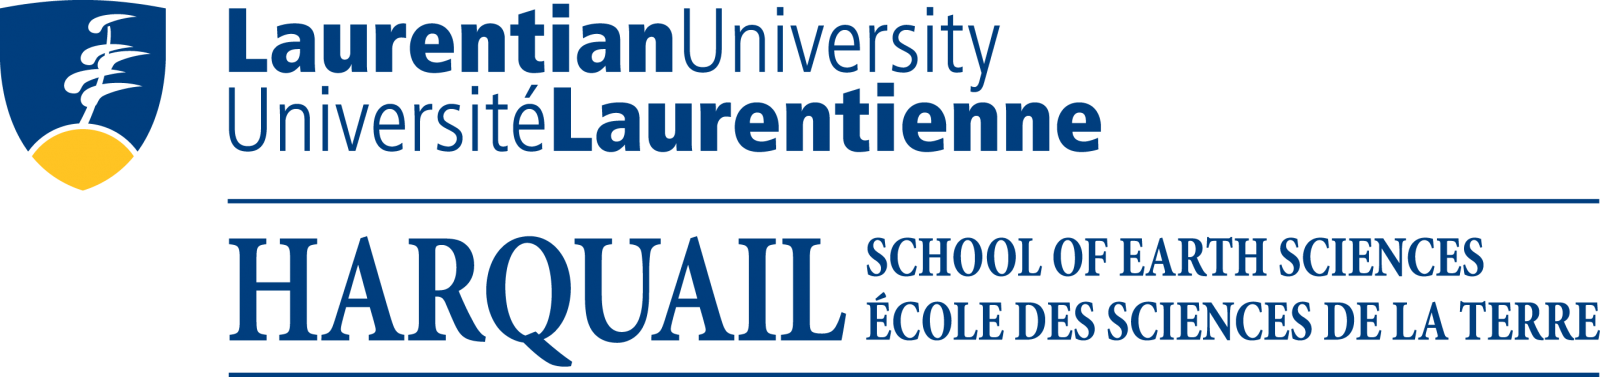 Harquail School of Earth Sciences logo